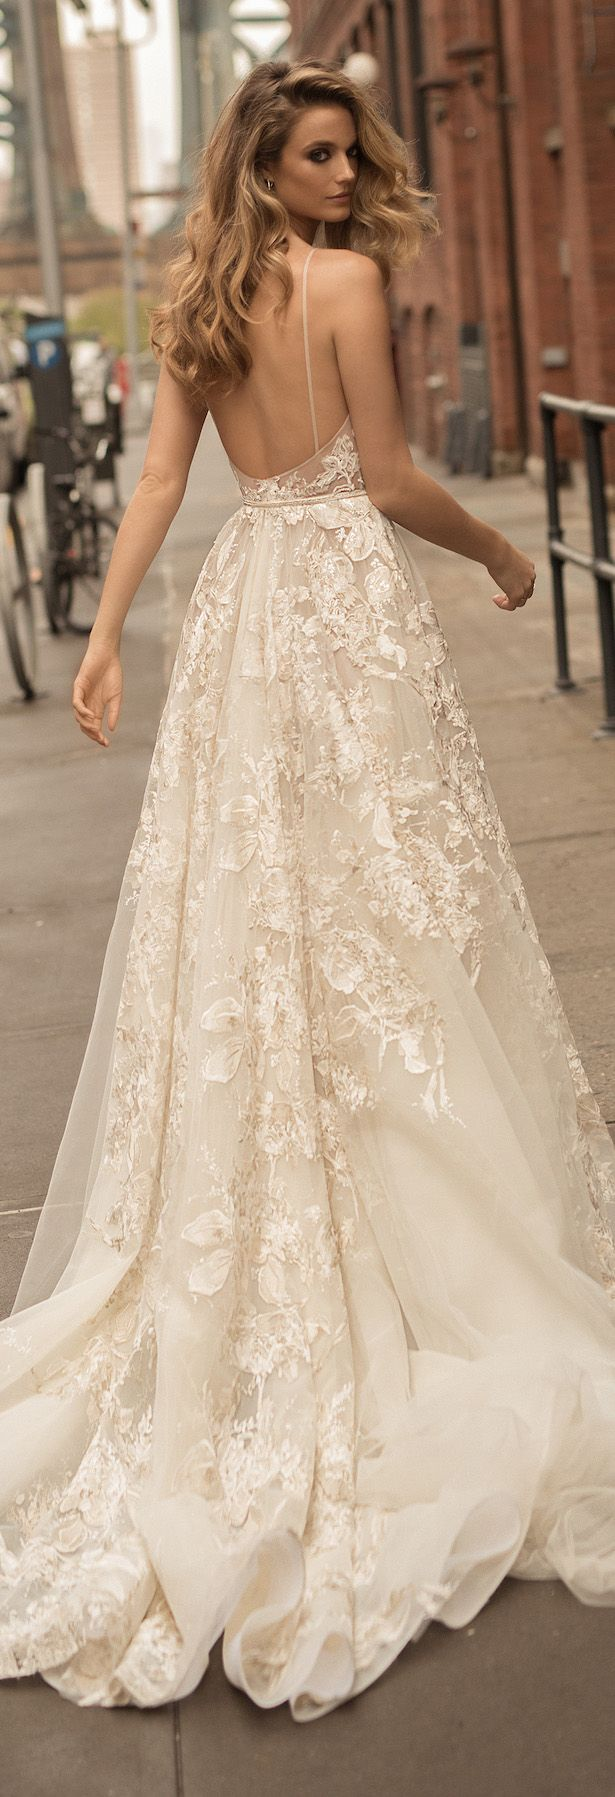 Berta Wedding Dress Collection Spring 2018